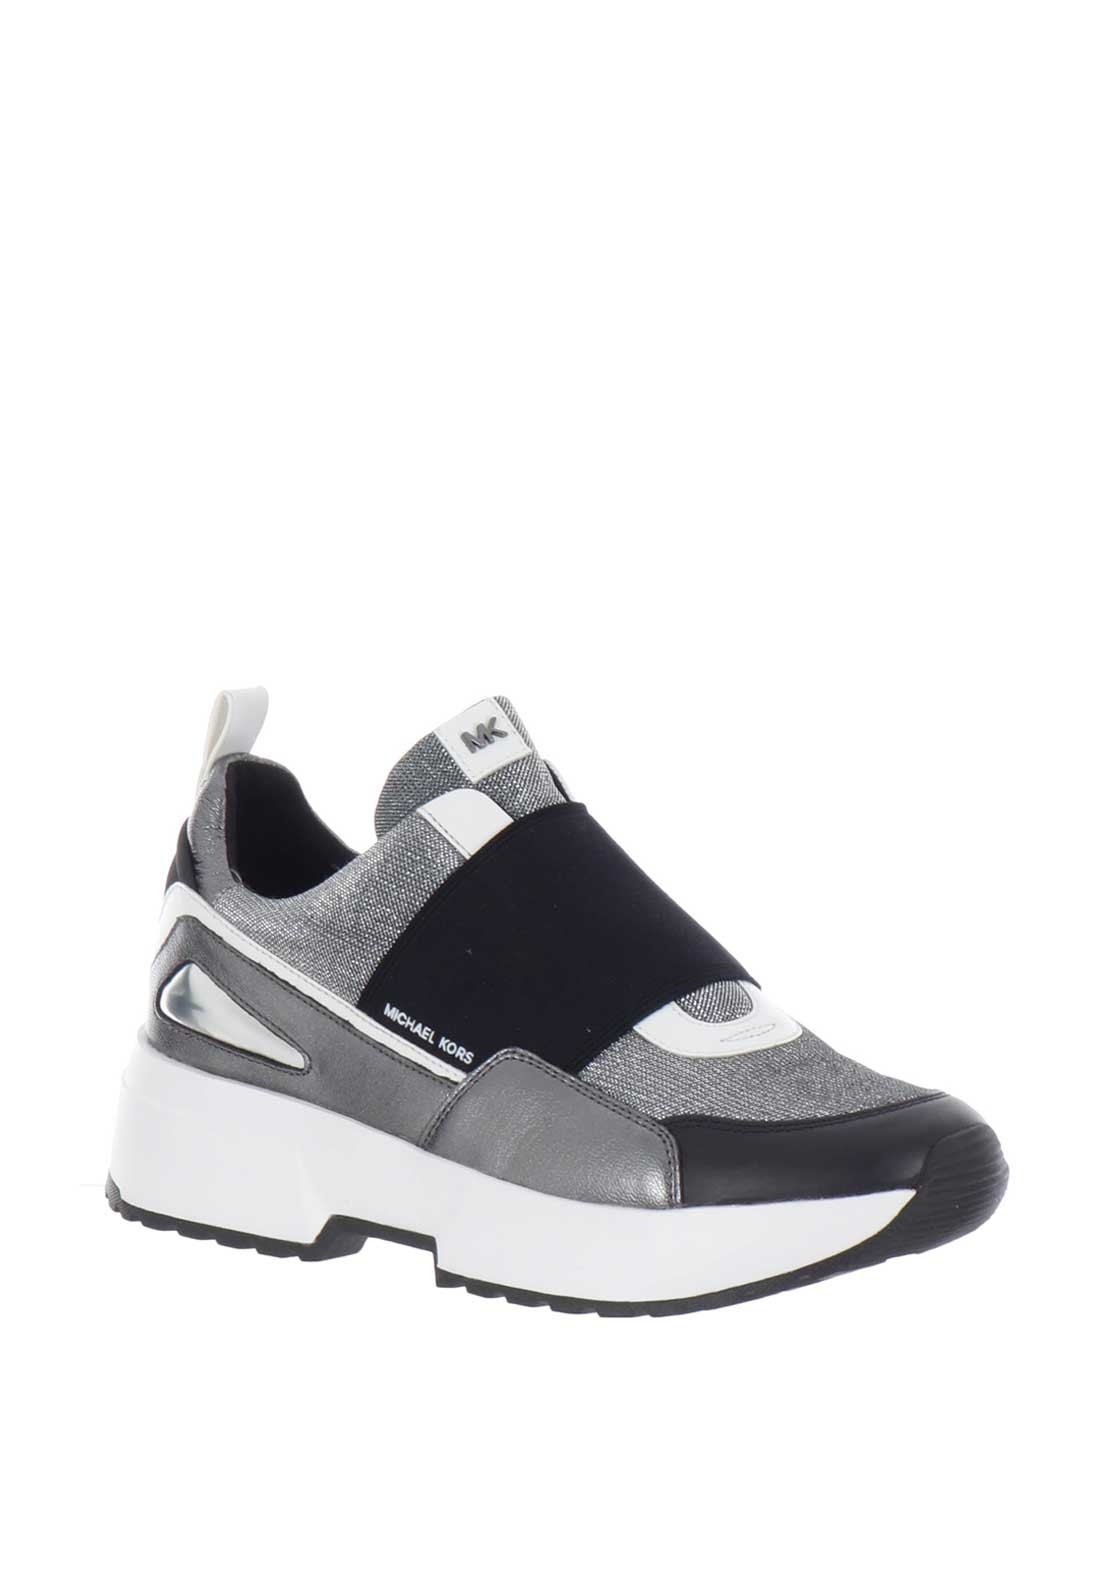 d49ce929e04 MICHAEL Michael Kors Cosmo Slip on Trainers, Silver. Be the first to review  this product